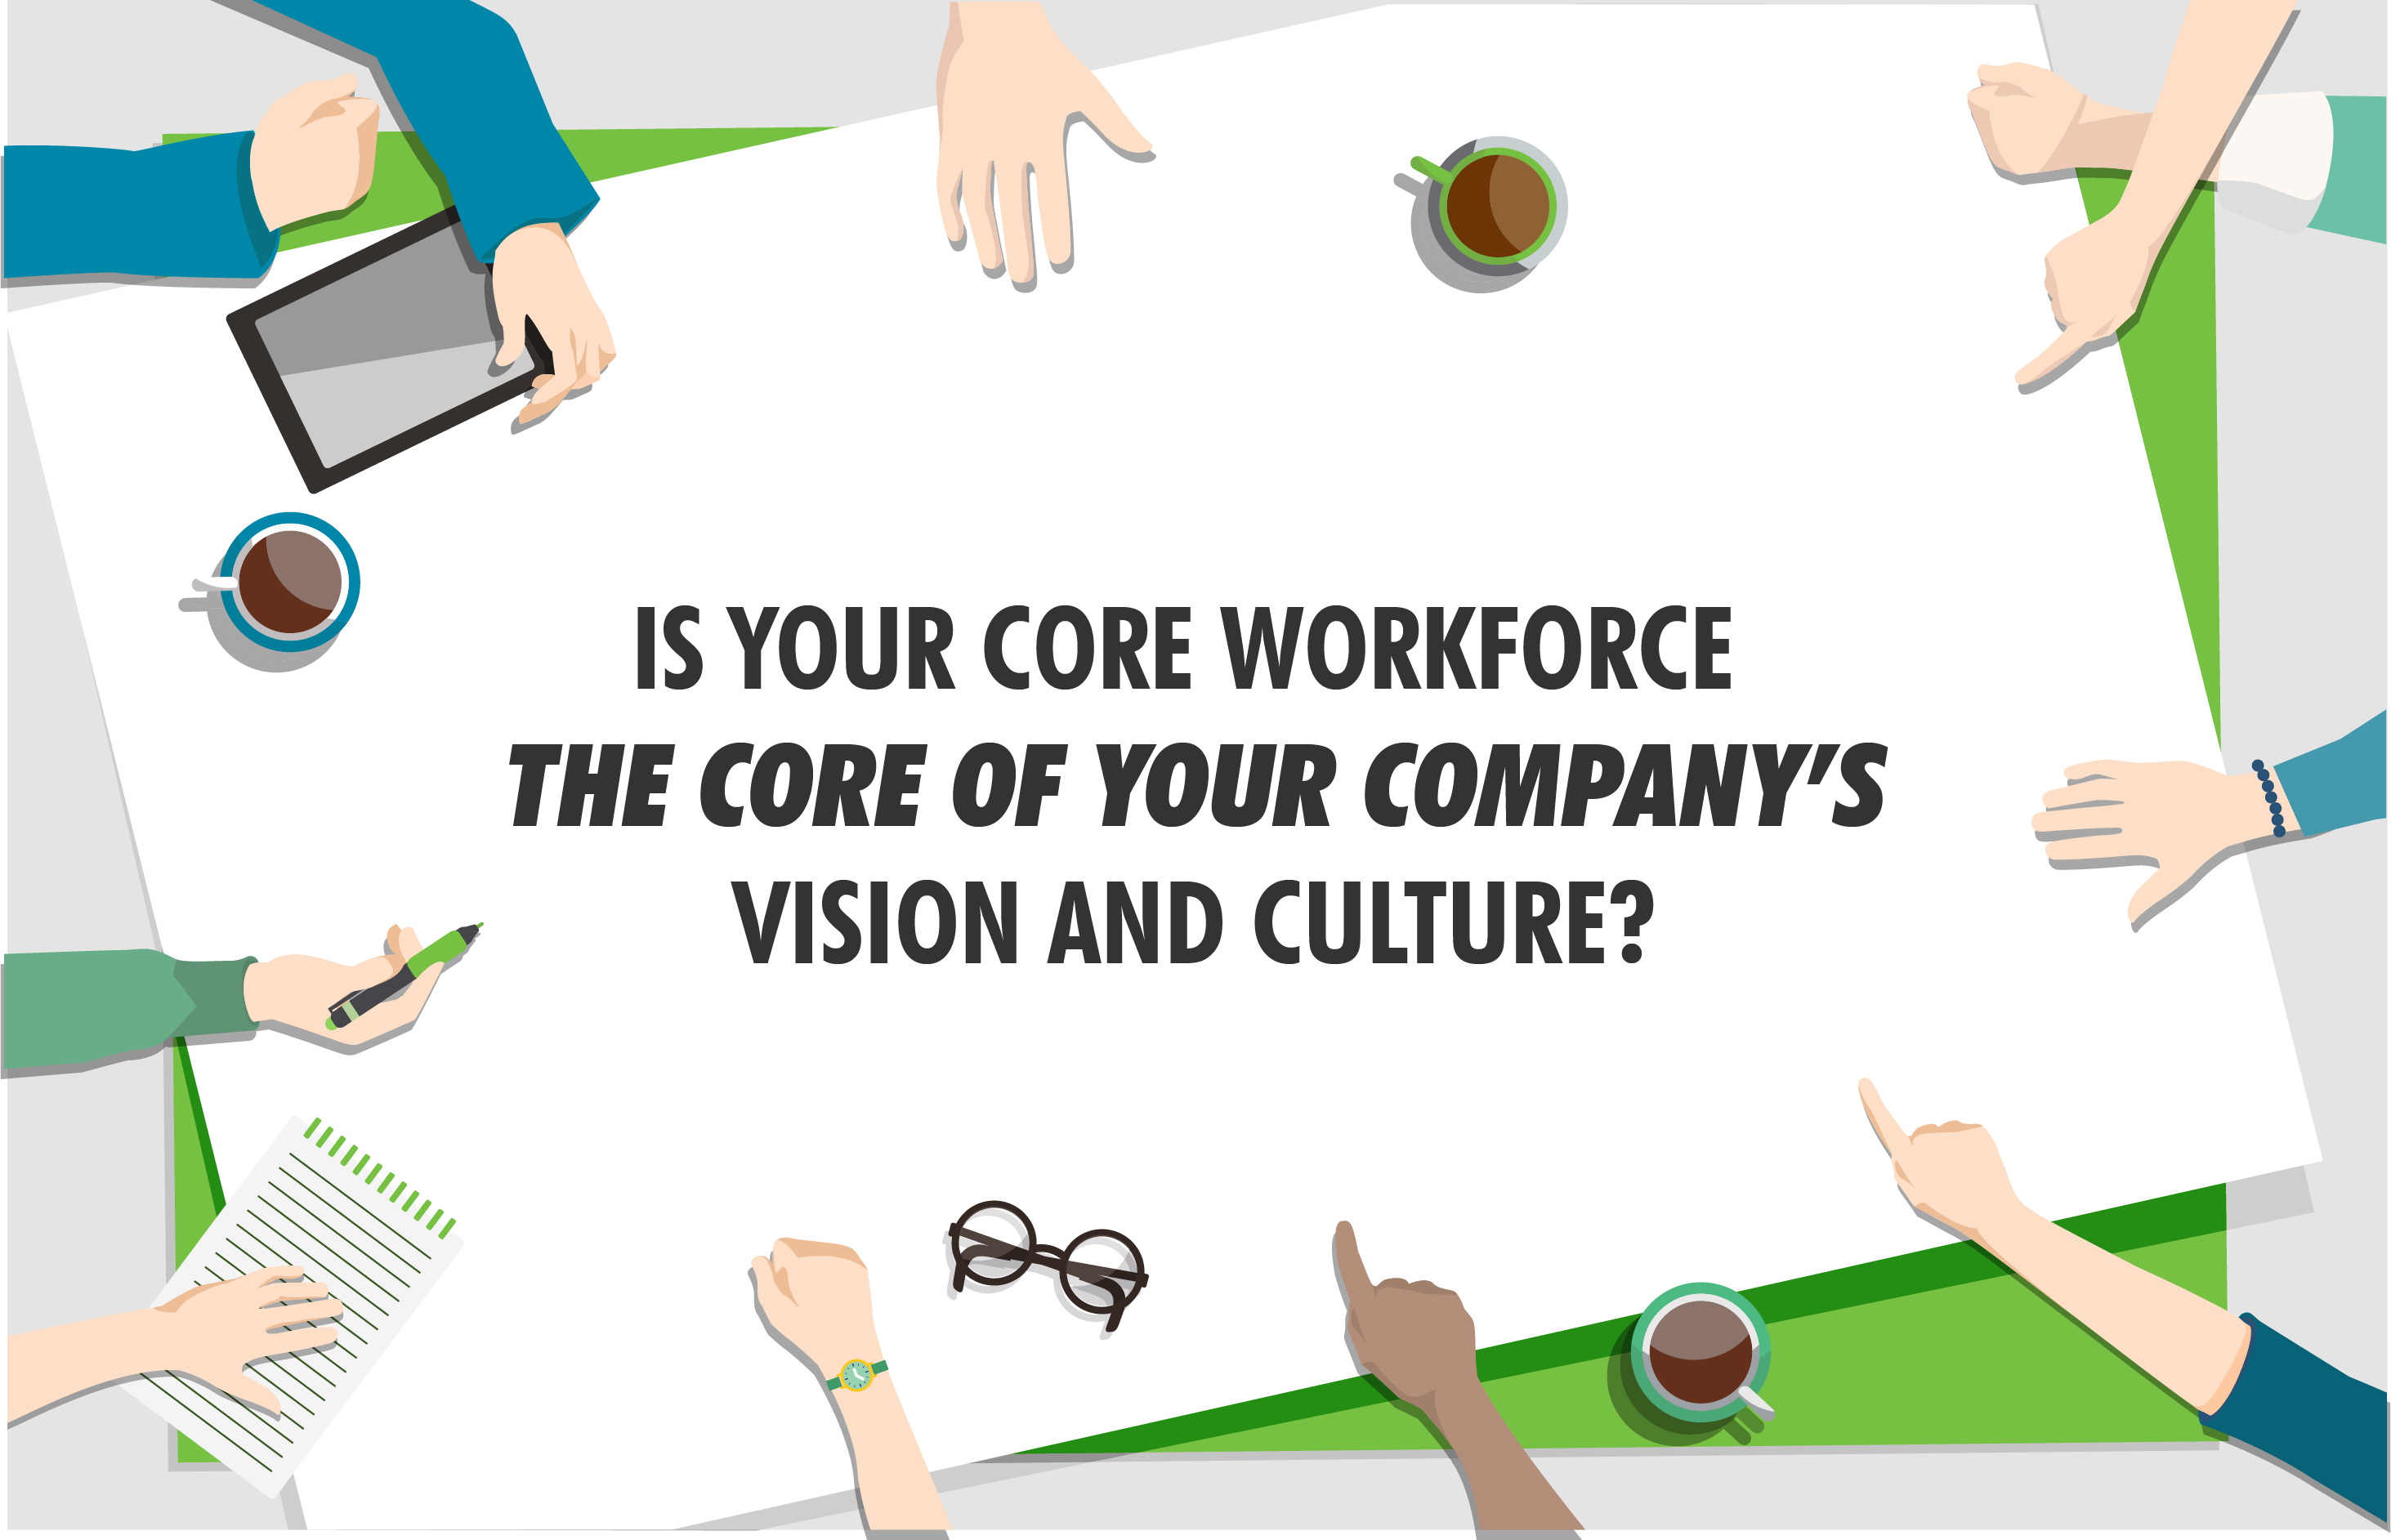 Is your core workforce at the core of your company's vision and culture